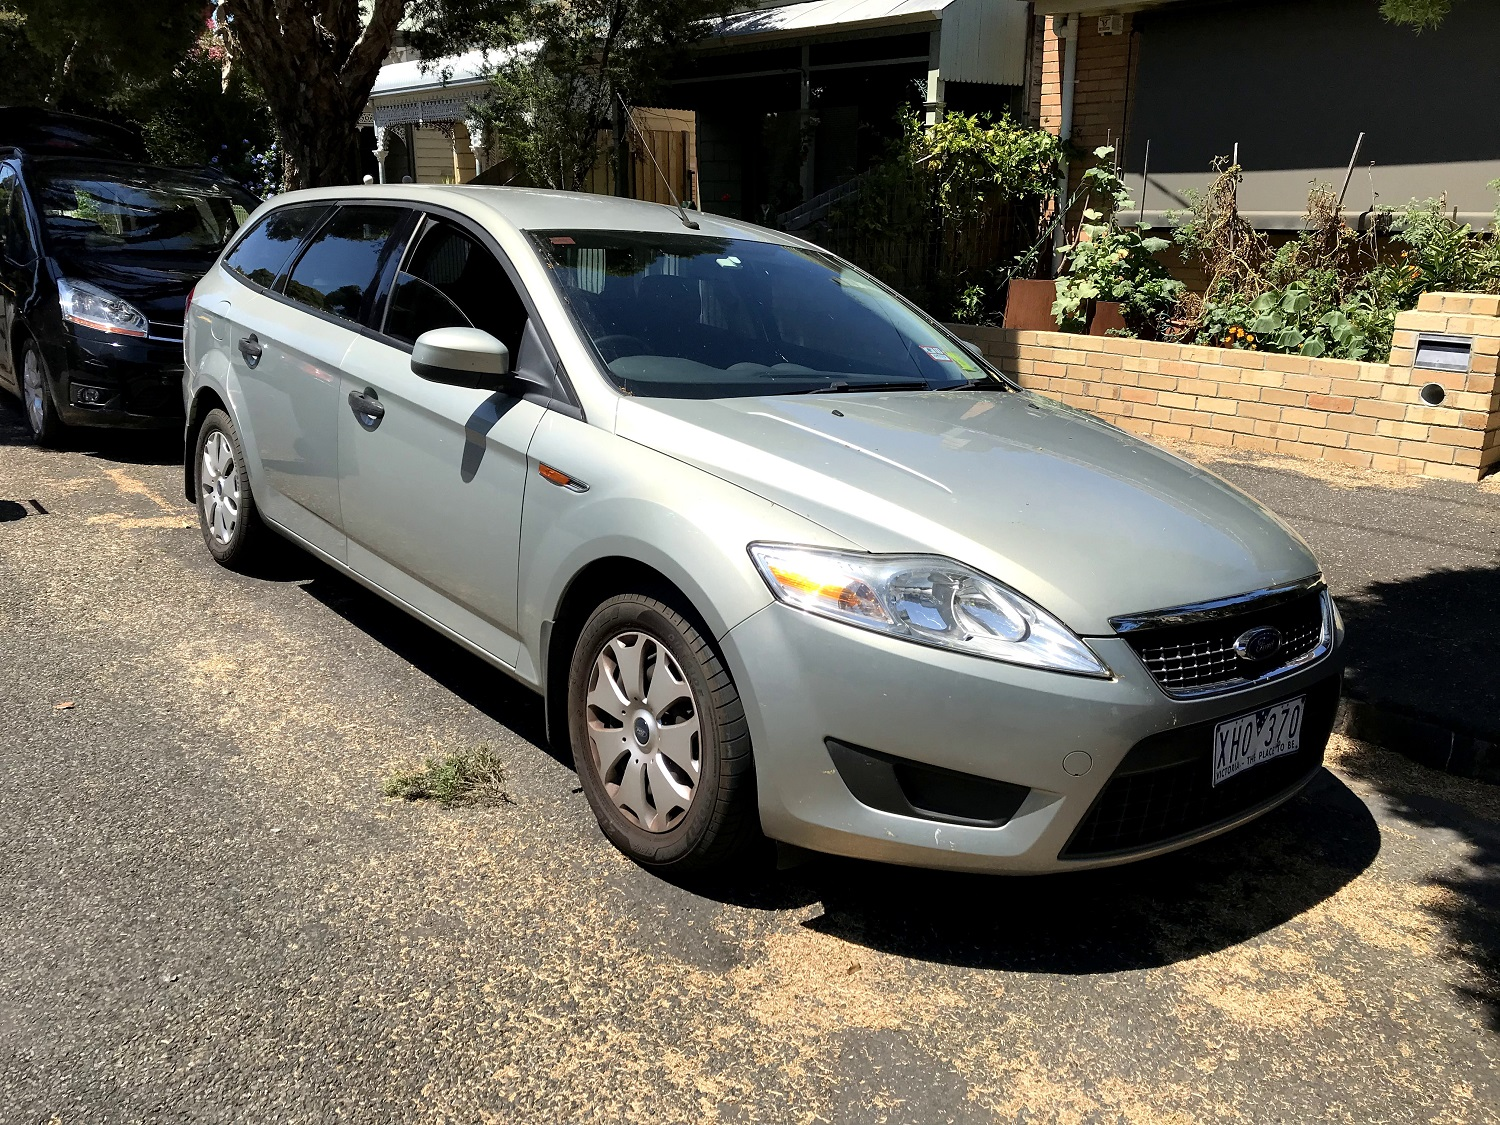 Picture of Josephine's 2009 Ford Mondeo